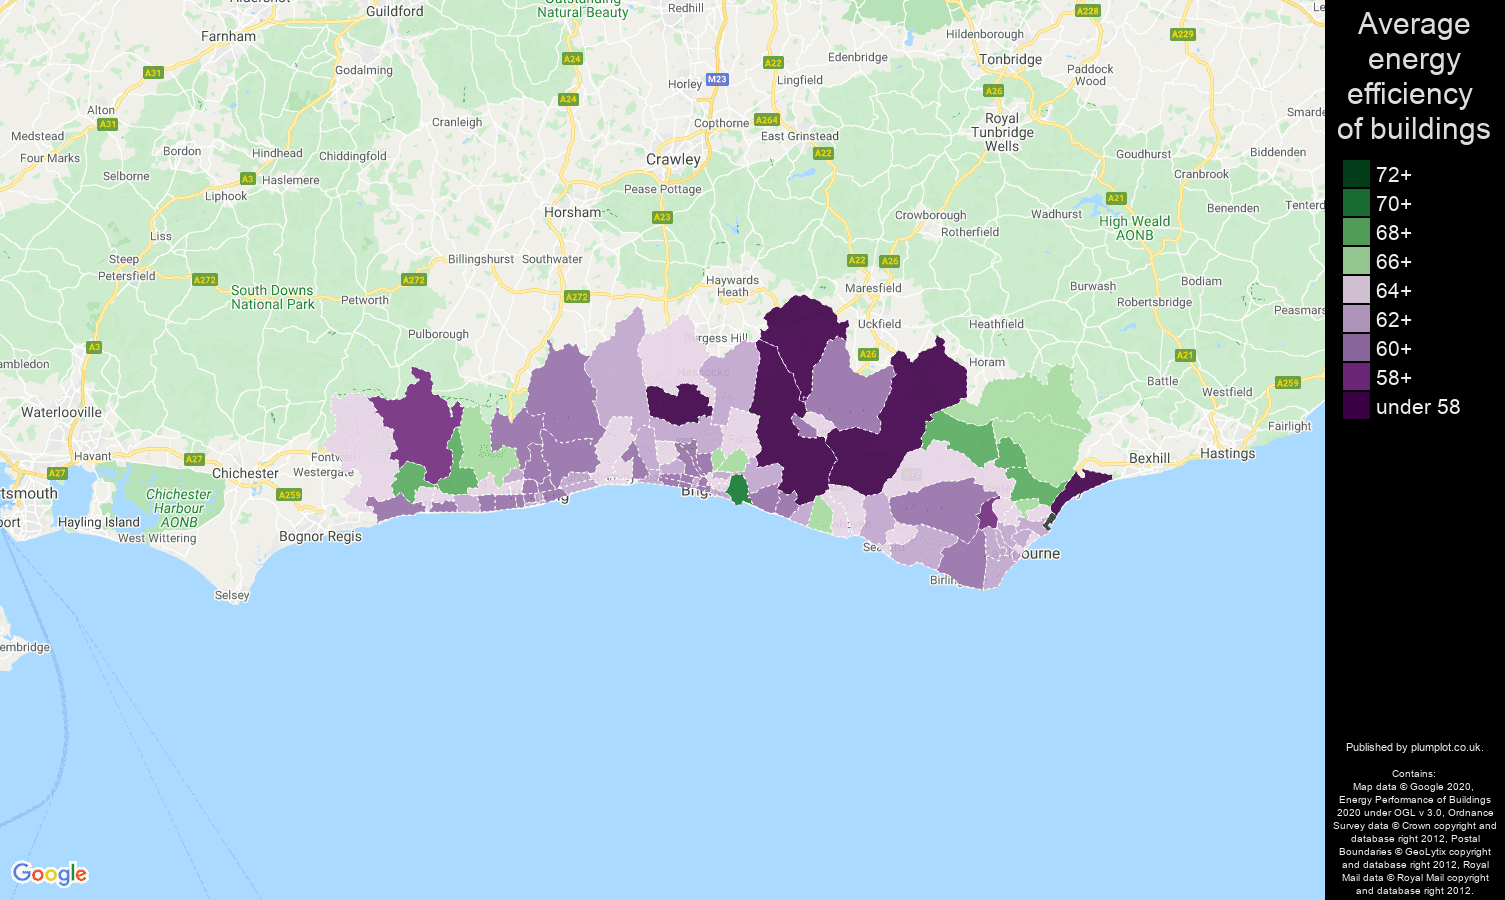 Brighton map of energy efficiency of properties